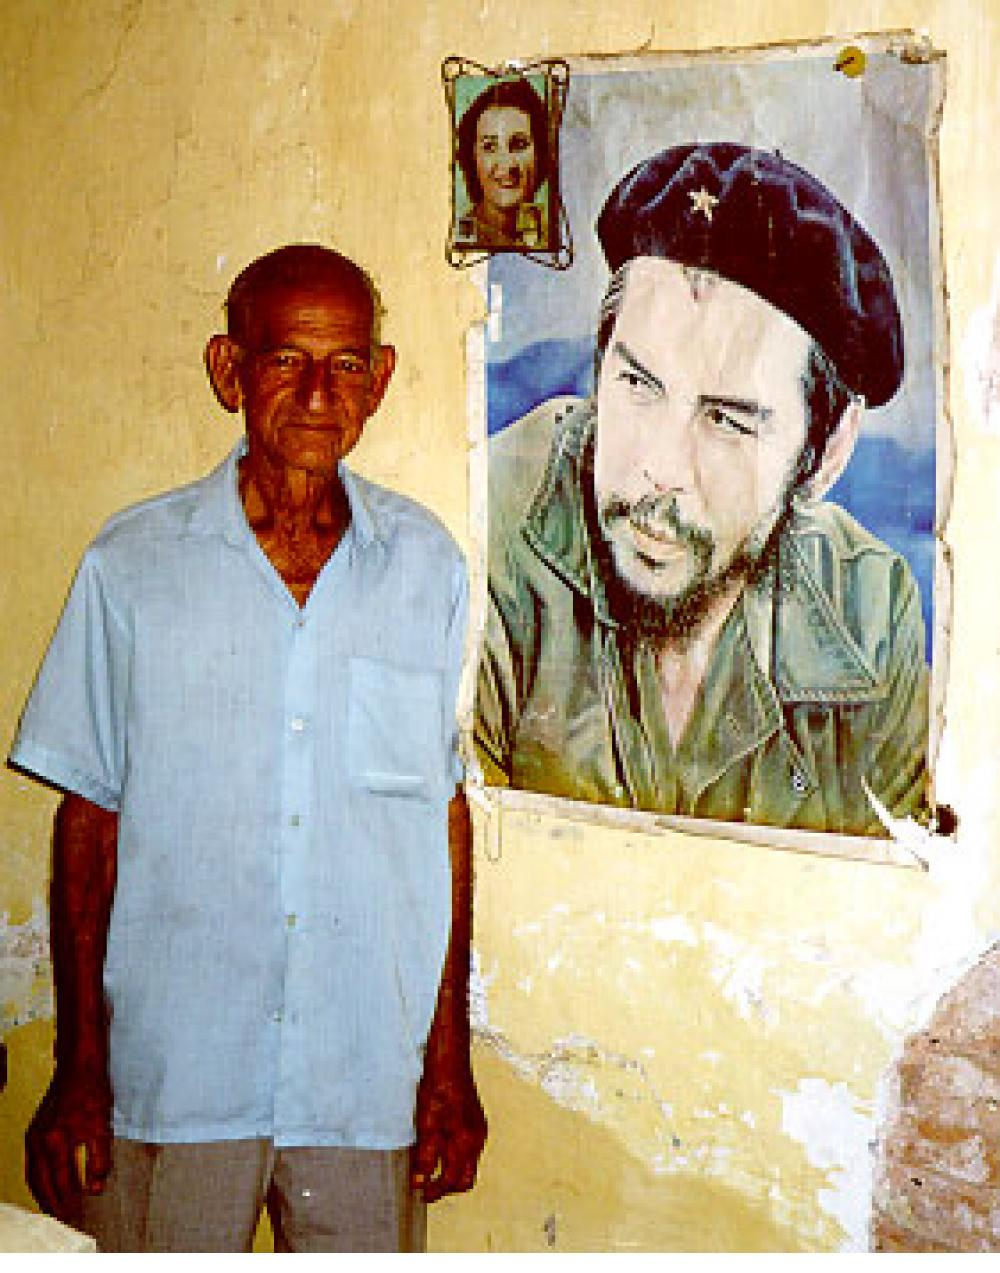 Veteran of the revolution - in Trinidad, Cuba, with pictures of his wife and Ché.